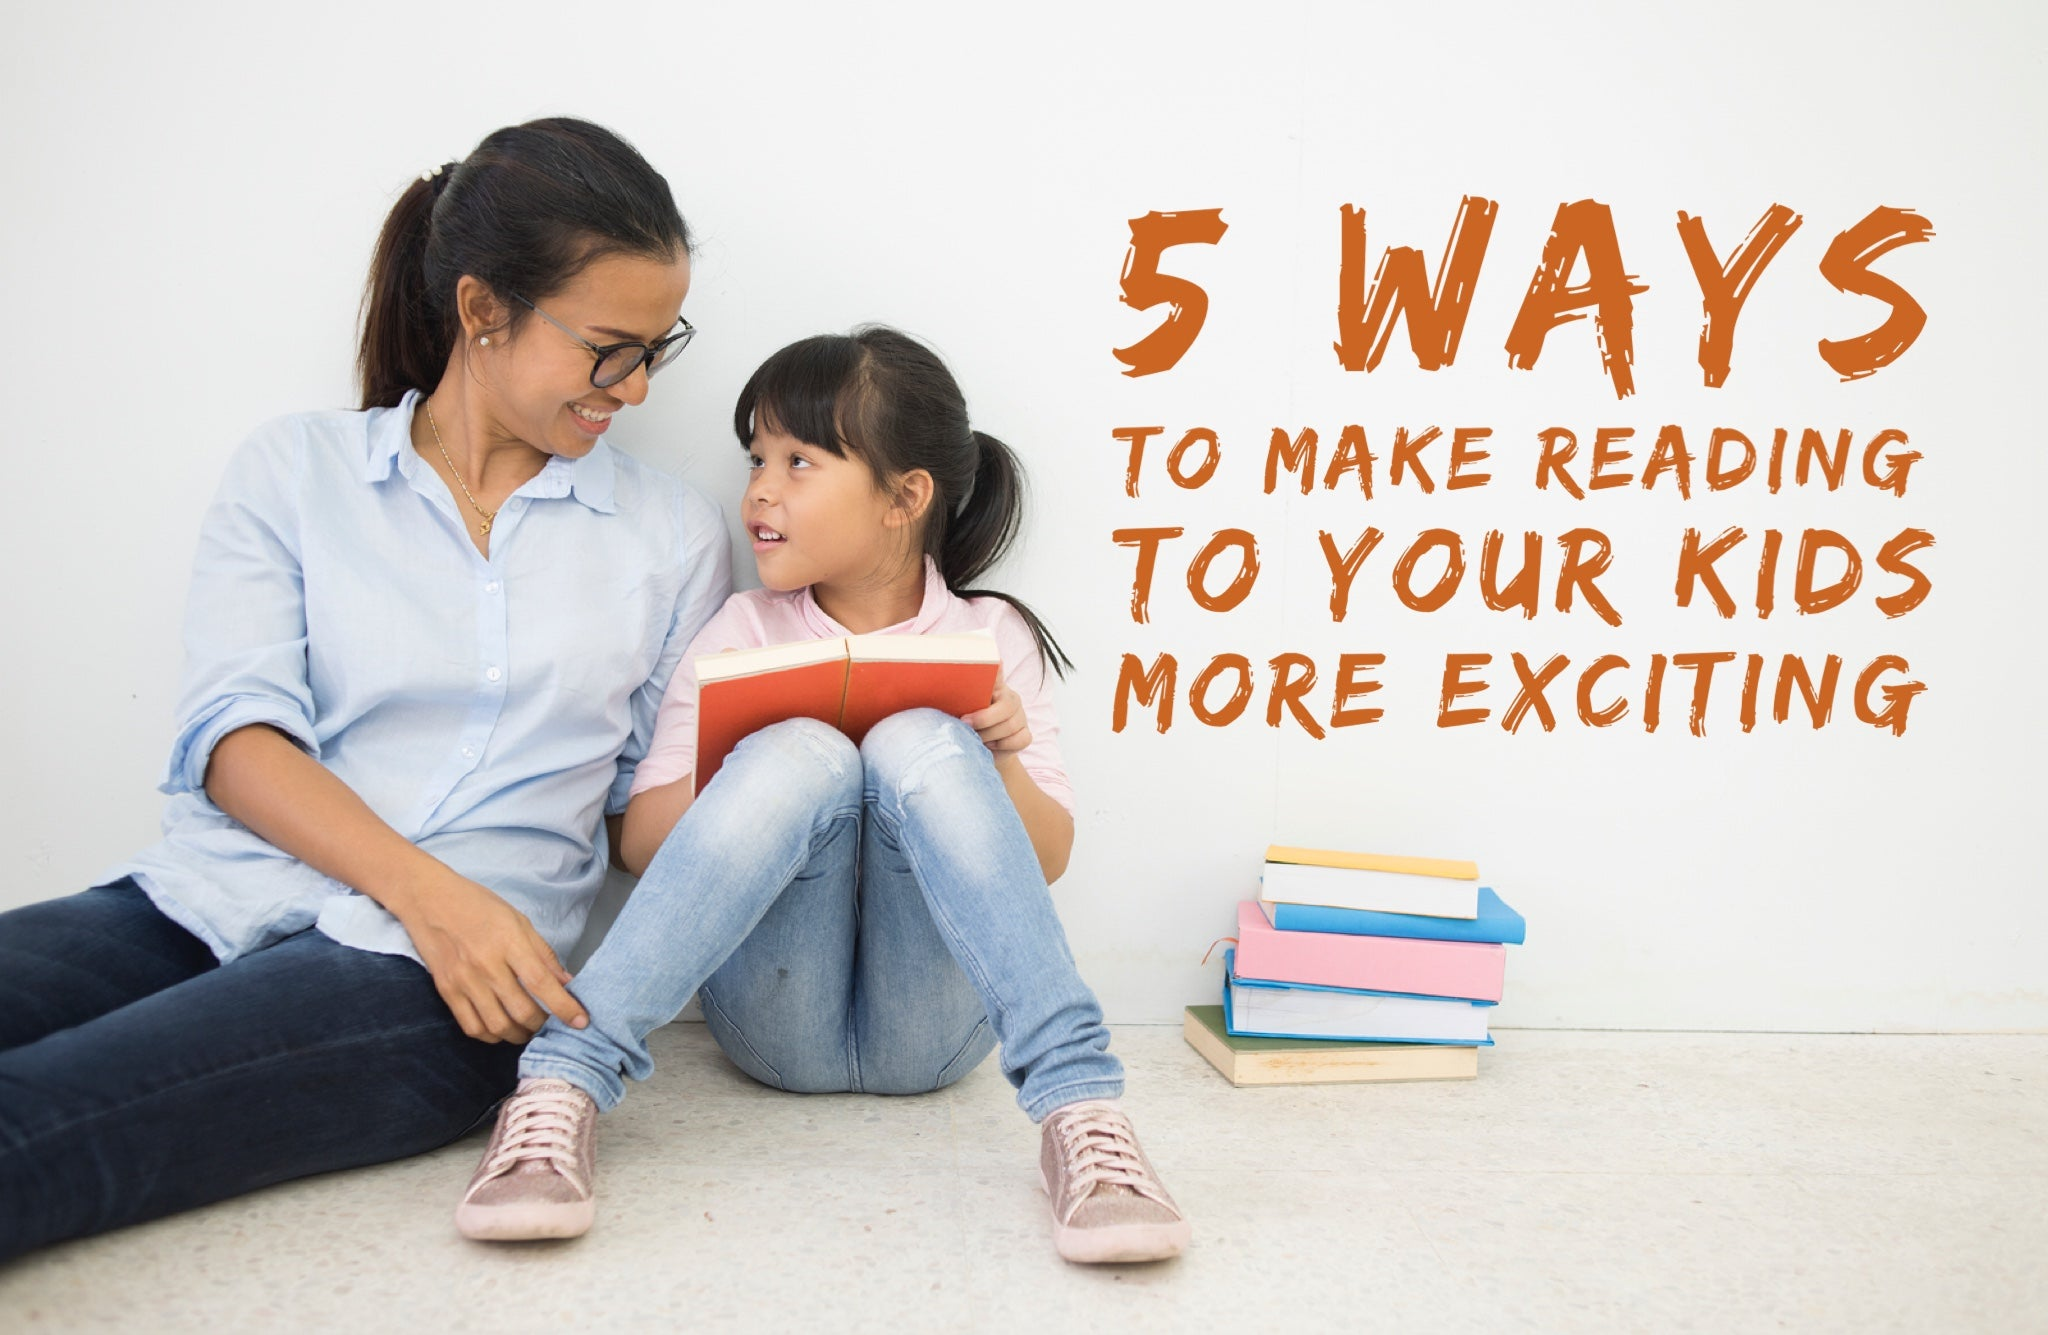 5 Ways to Make Reading to Your Kids More Exciting